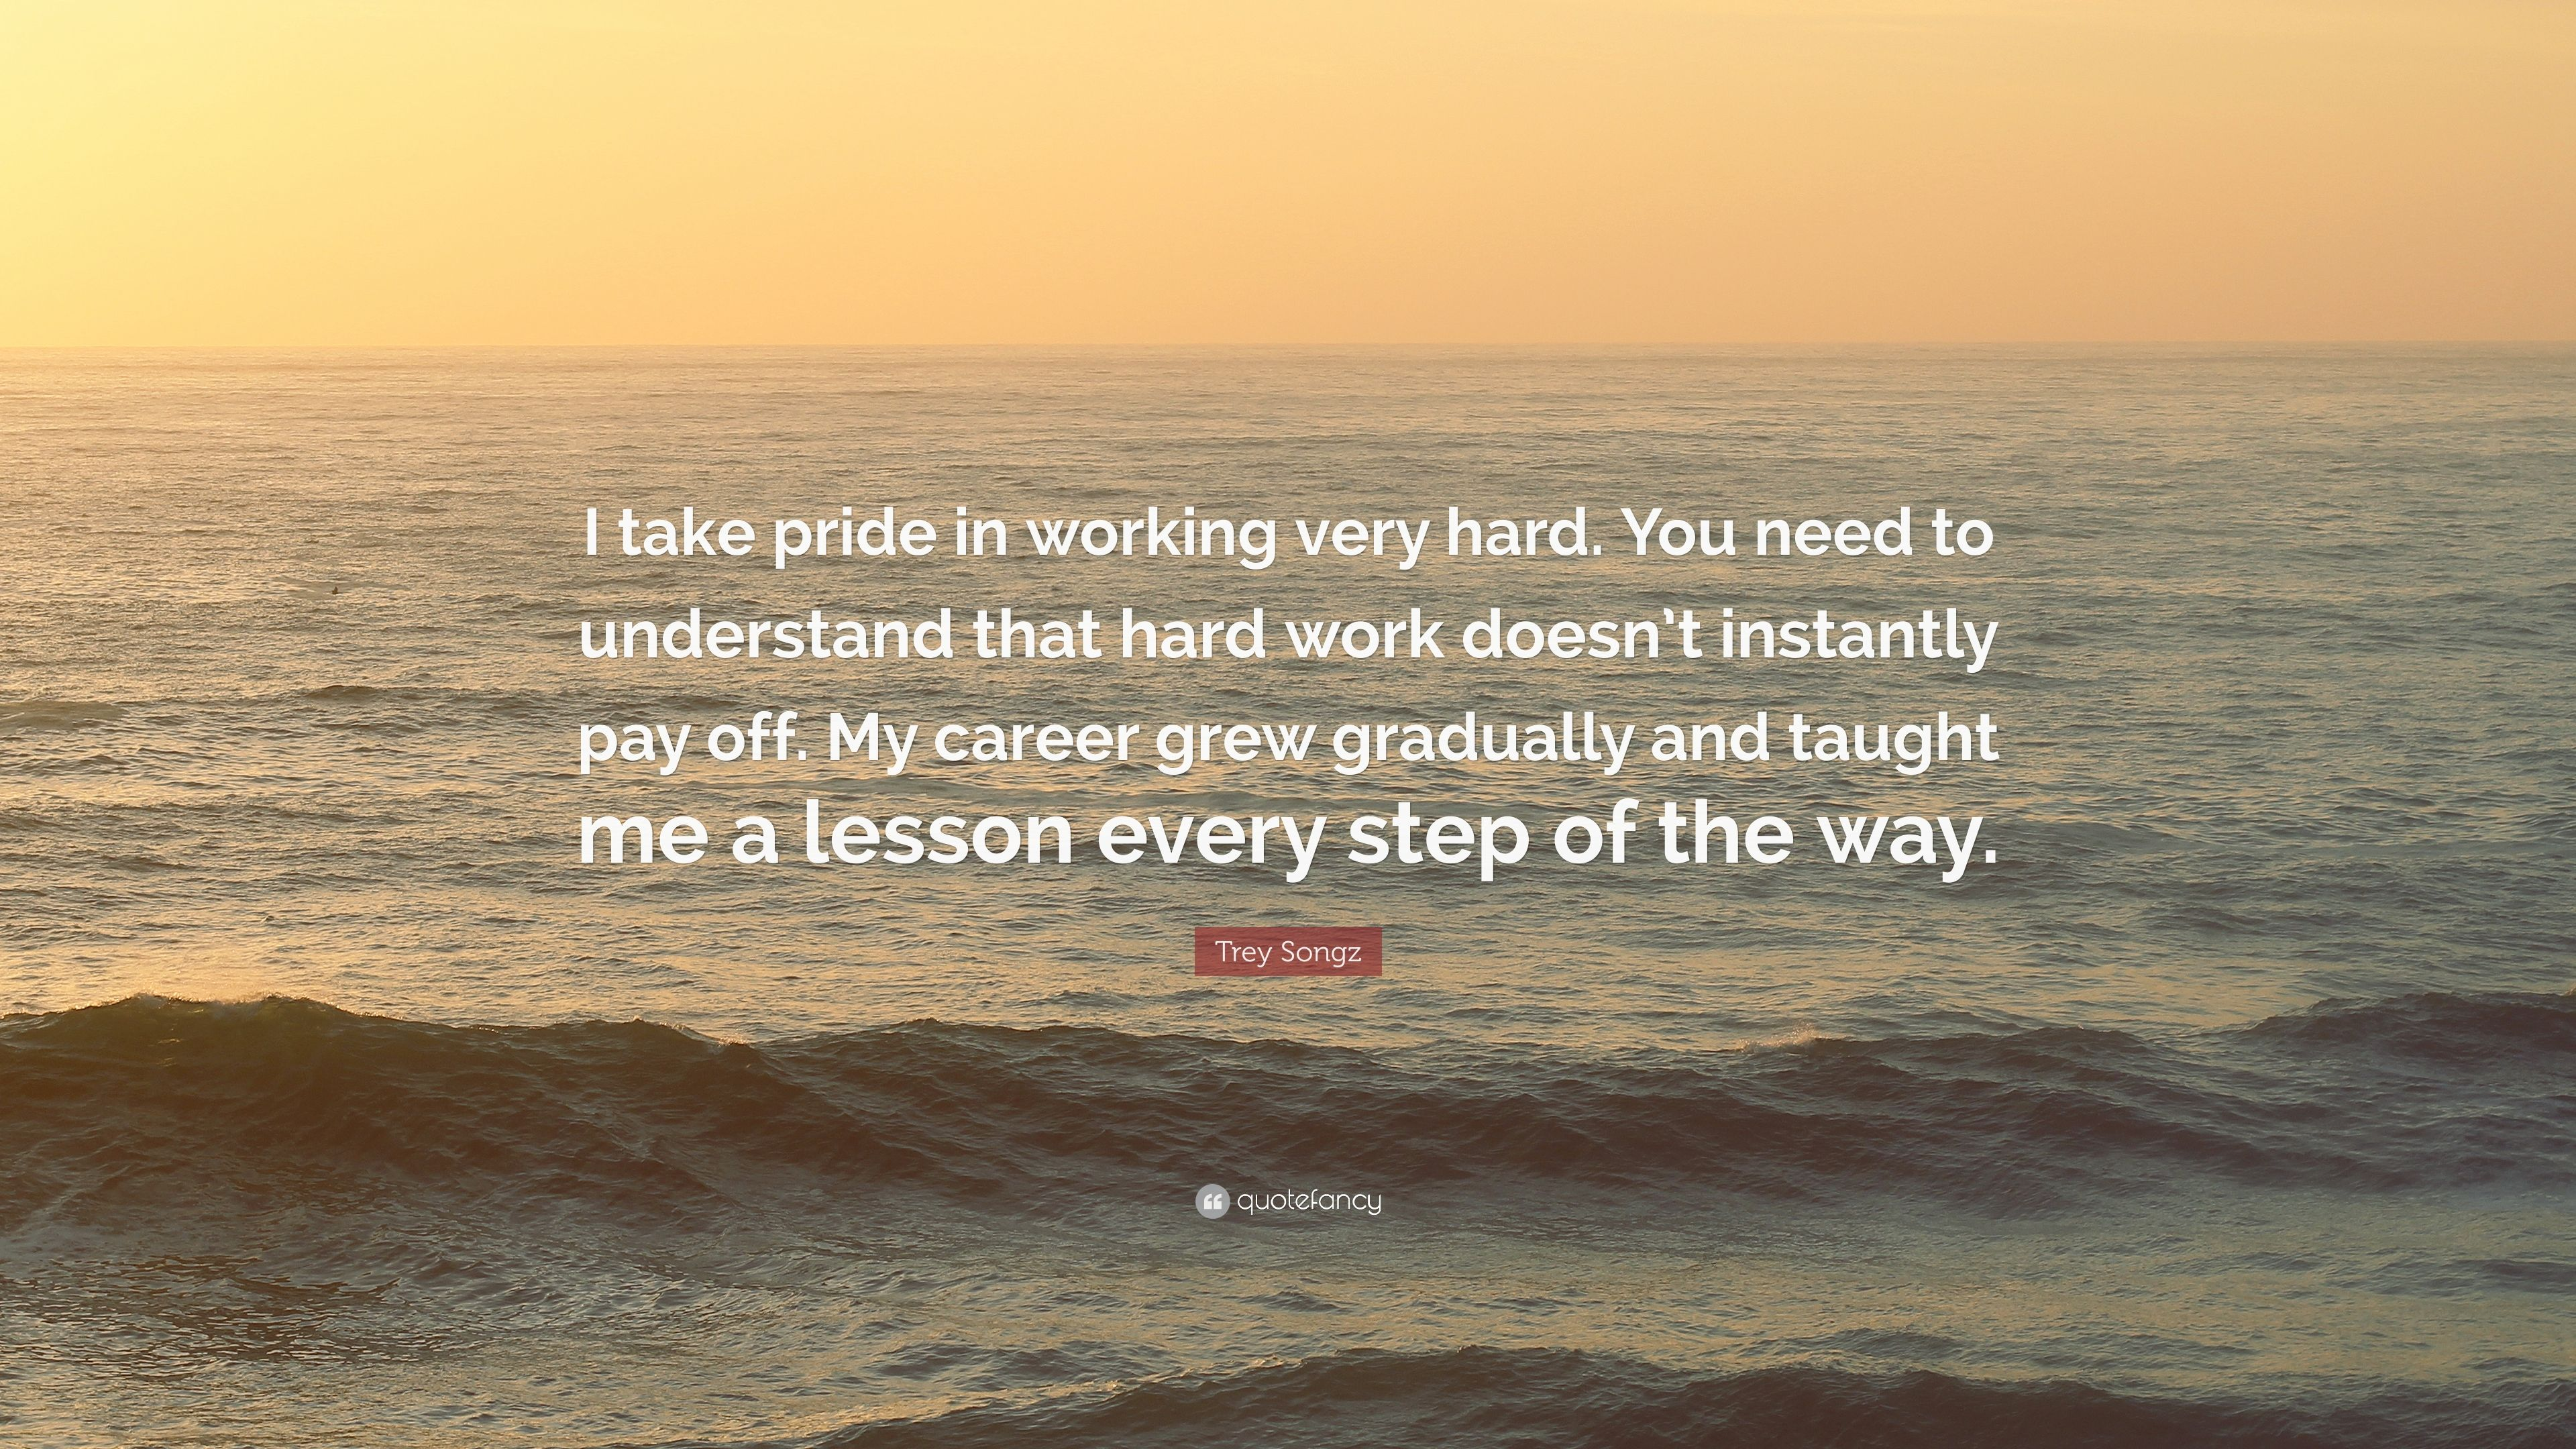 Awesome Trey Songz Quote: U201cI Take Pride In Working Very Hard. You Need To